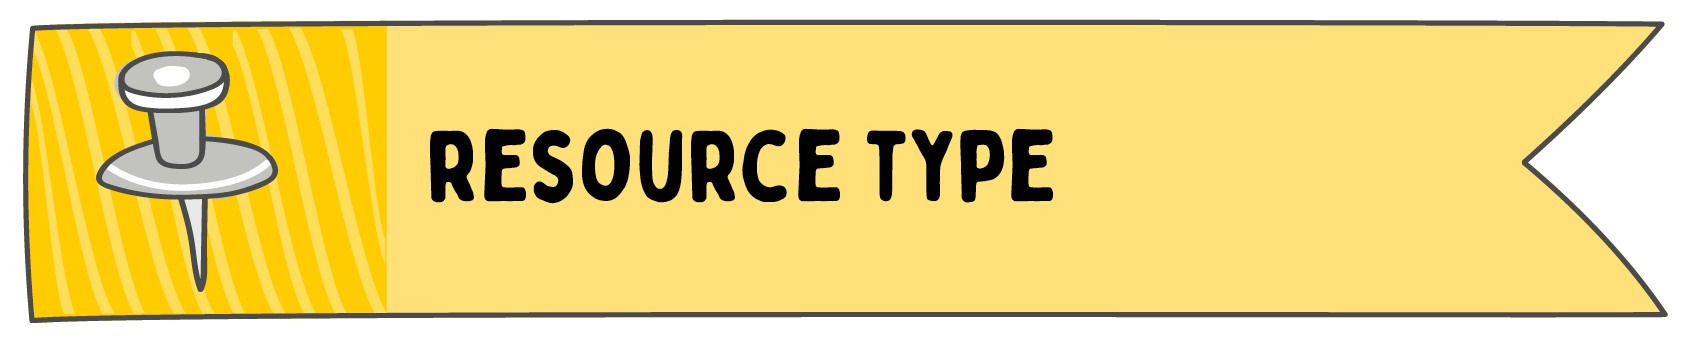 Resource type